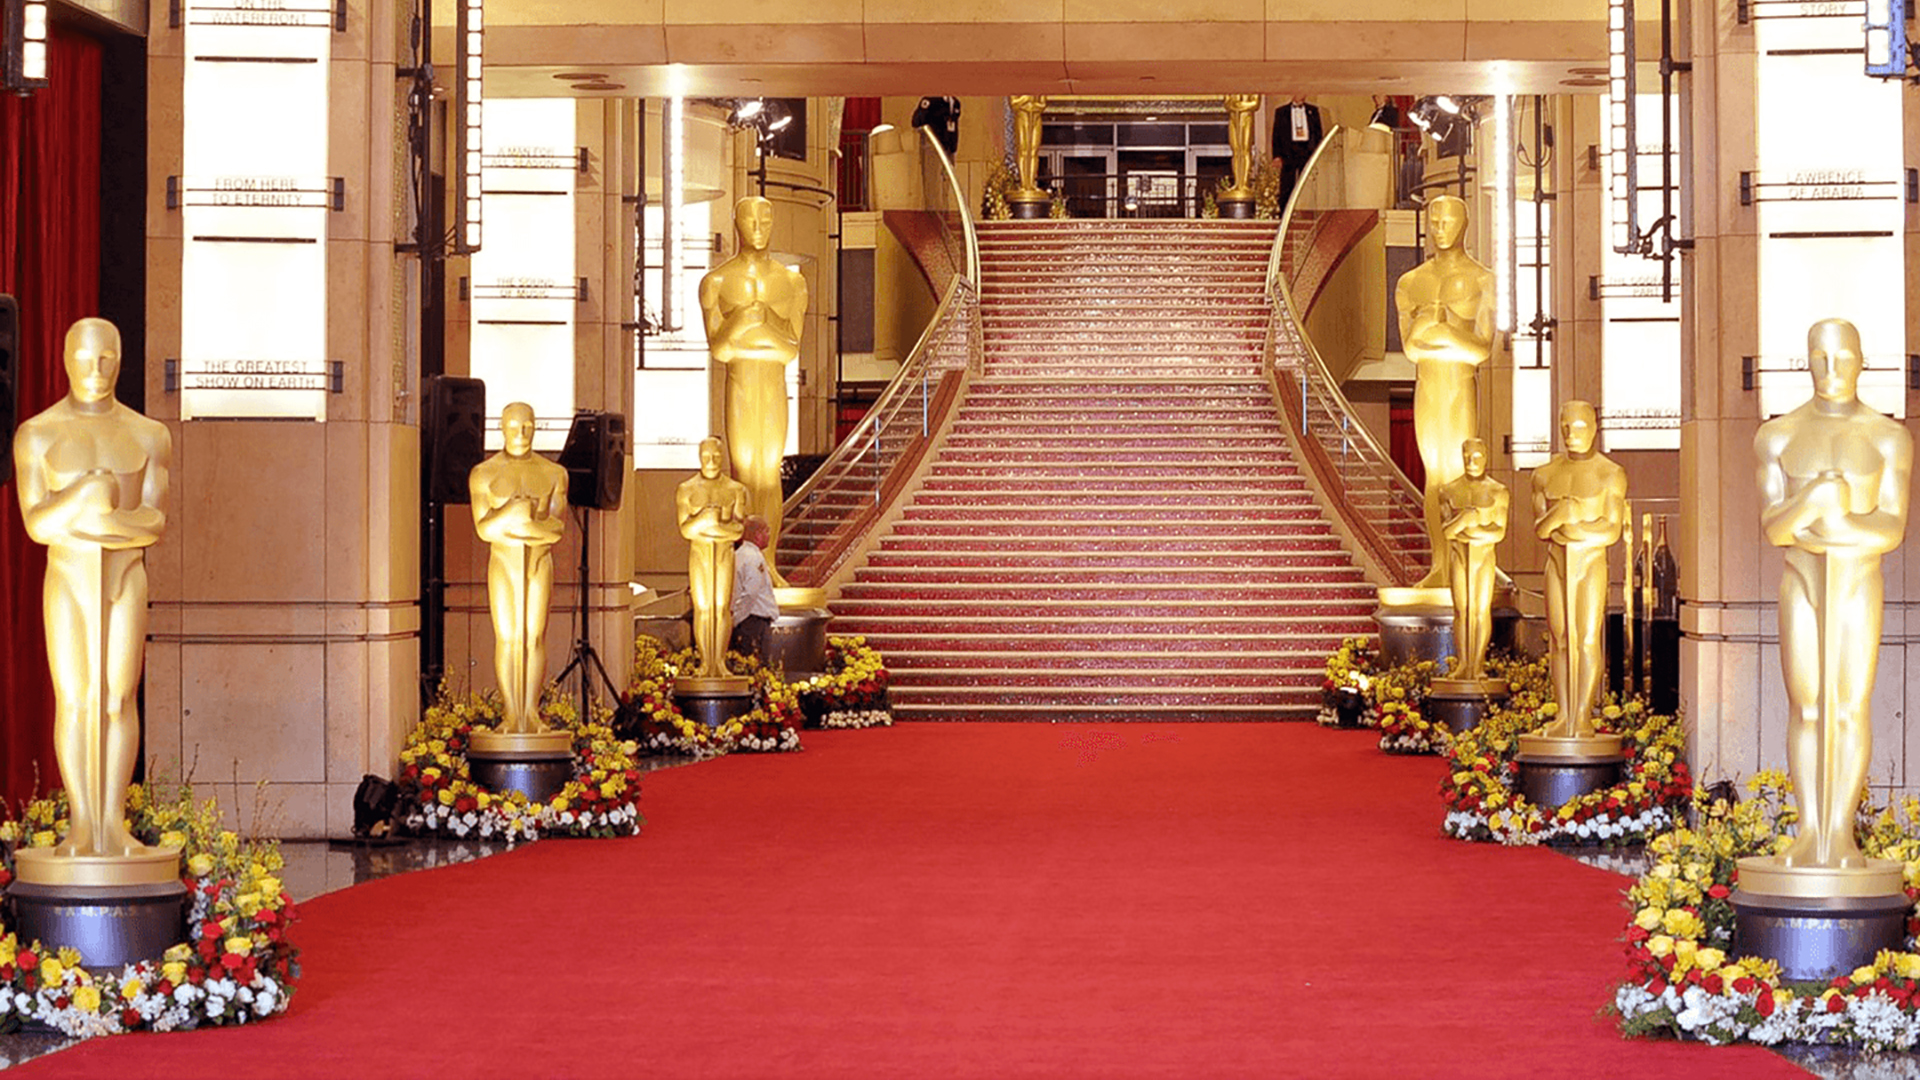 The Oscars red carpet entrance. Virtual background to use on Zoom, Microsoft Teams, Skype, Google Meet, WebEx or any other compatible app.